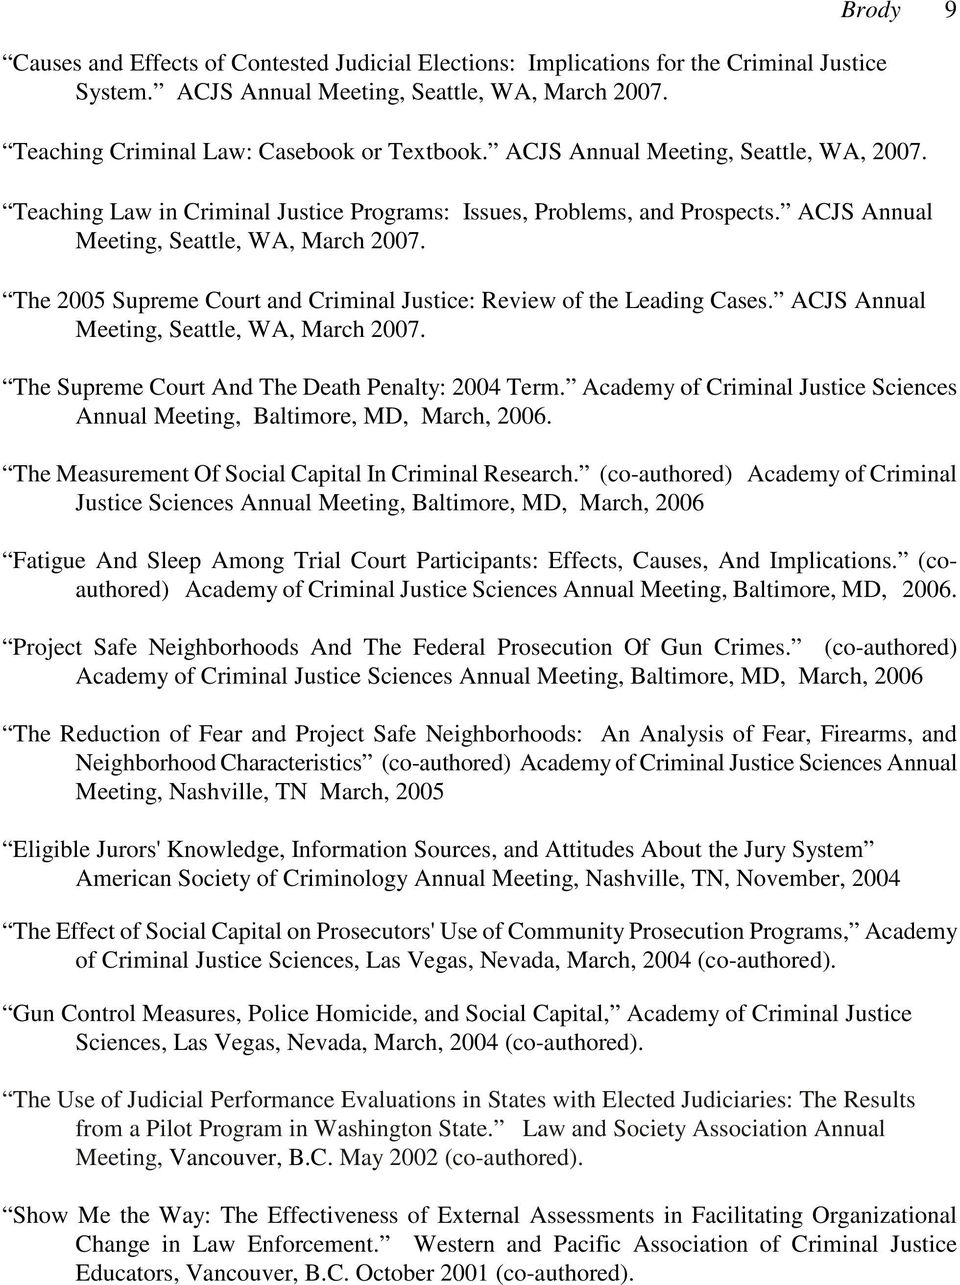 The 2005 Supreme Court and Criminal Justice: Review of the Leading Cases. ACJS Annual Meeting, Seattle, WA, March 2007. The Supreme Court And The Death Penalty: 2004 Term.